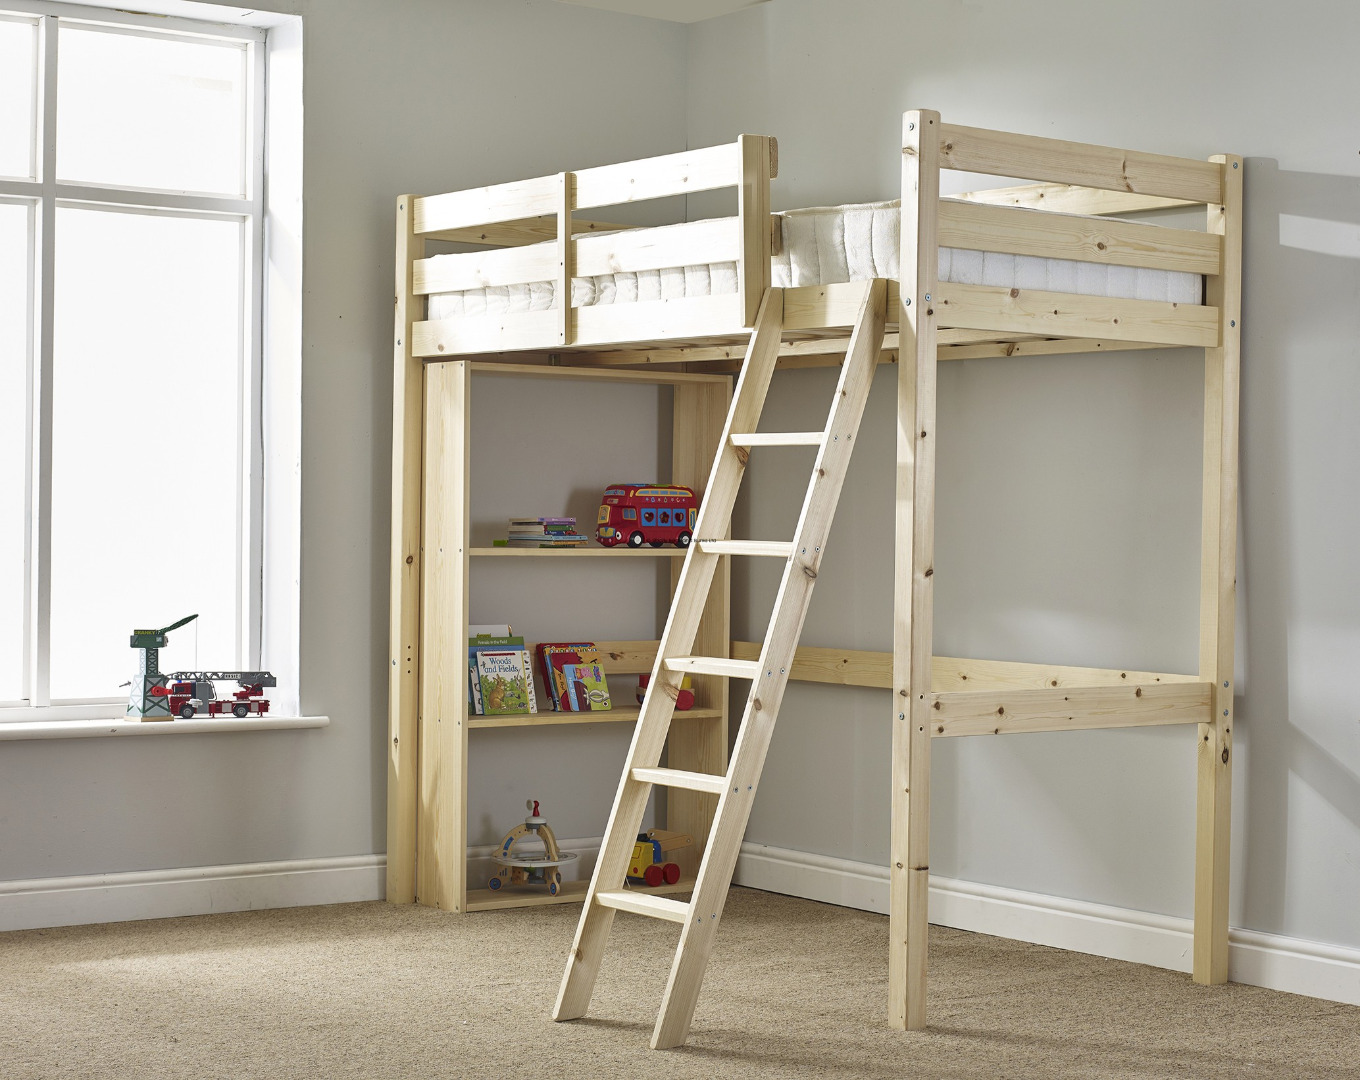 Celeste 3ft Single HEAVY DUTY HIGH SLEEPER Bunk Bed (NO BOOKCASE)